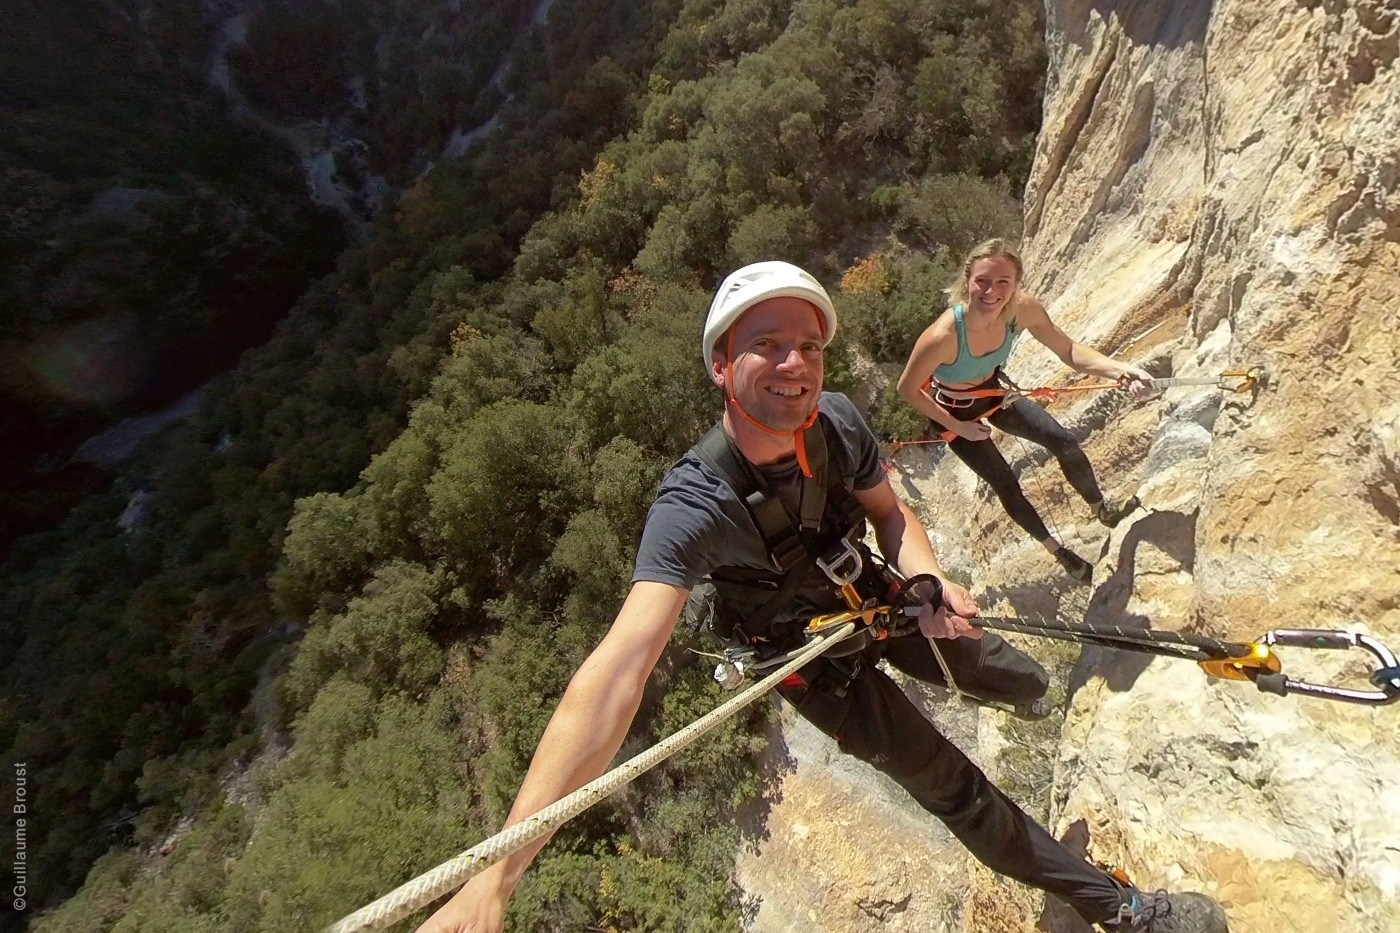 Julia Chanourdie and Guillaume Broust during the shooting in Eagle-4 (5.15b)